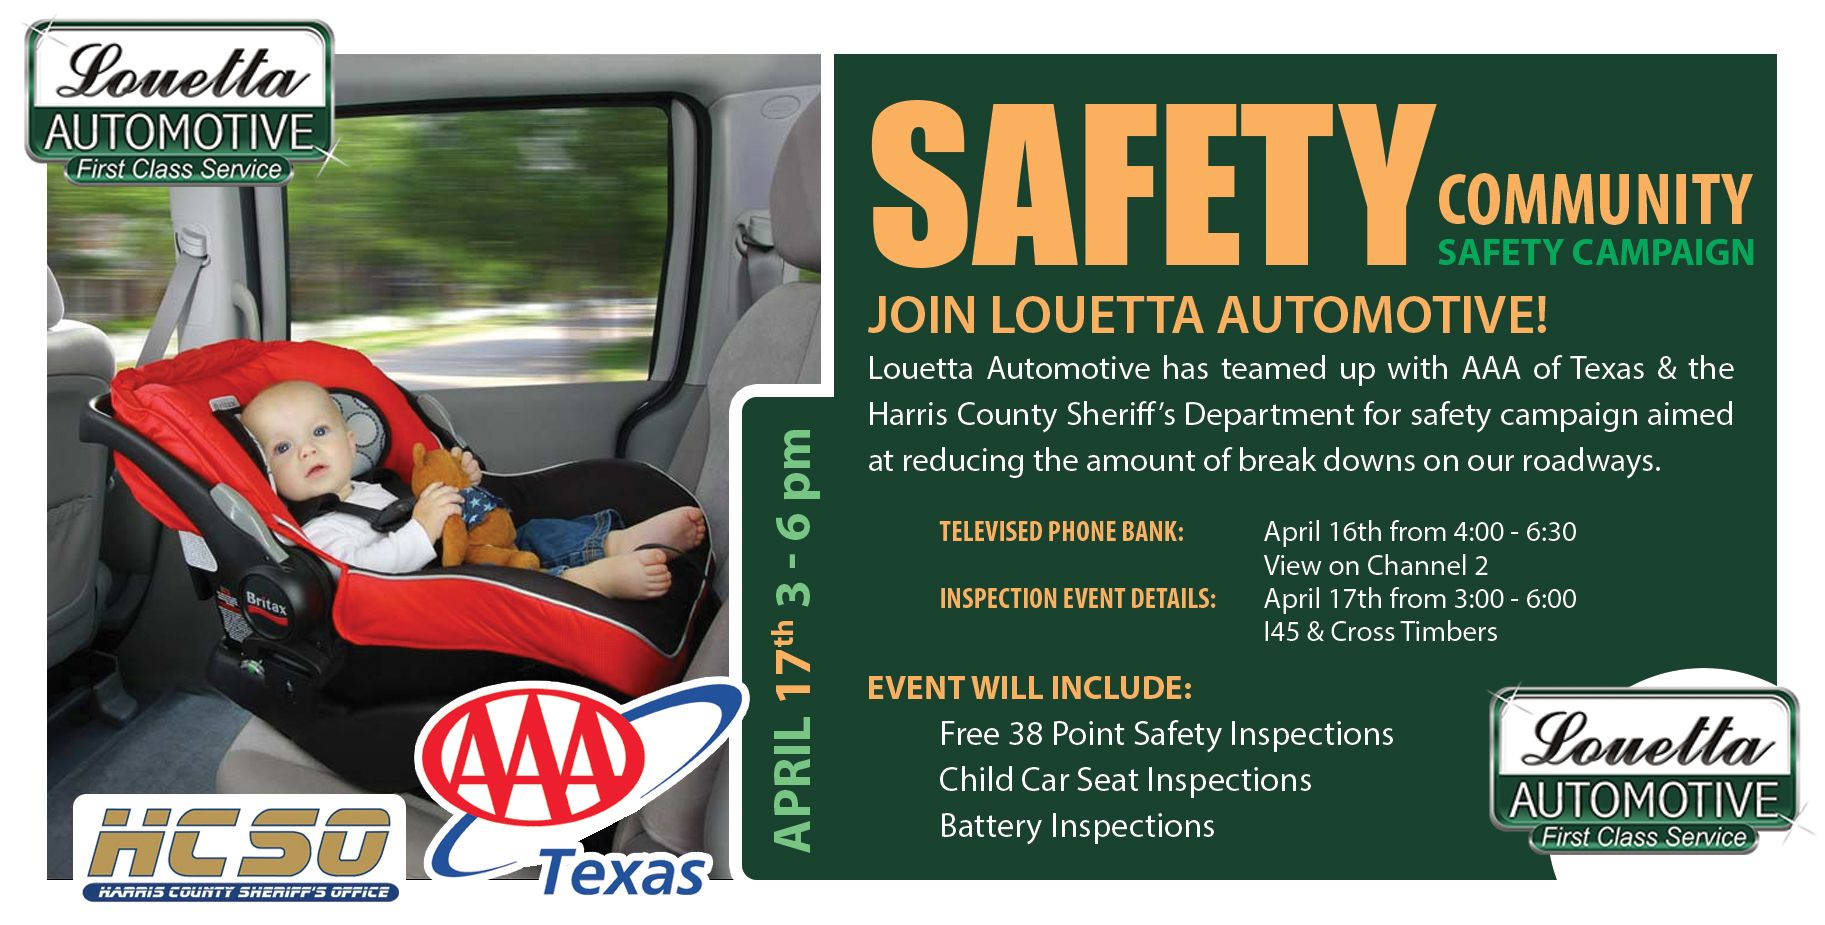 Louetta Automotive Has Teamed Up With AAA Of Texas The Harris County Sheriffs Department For